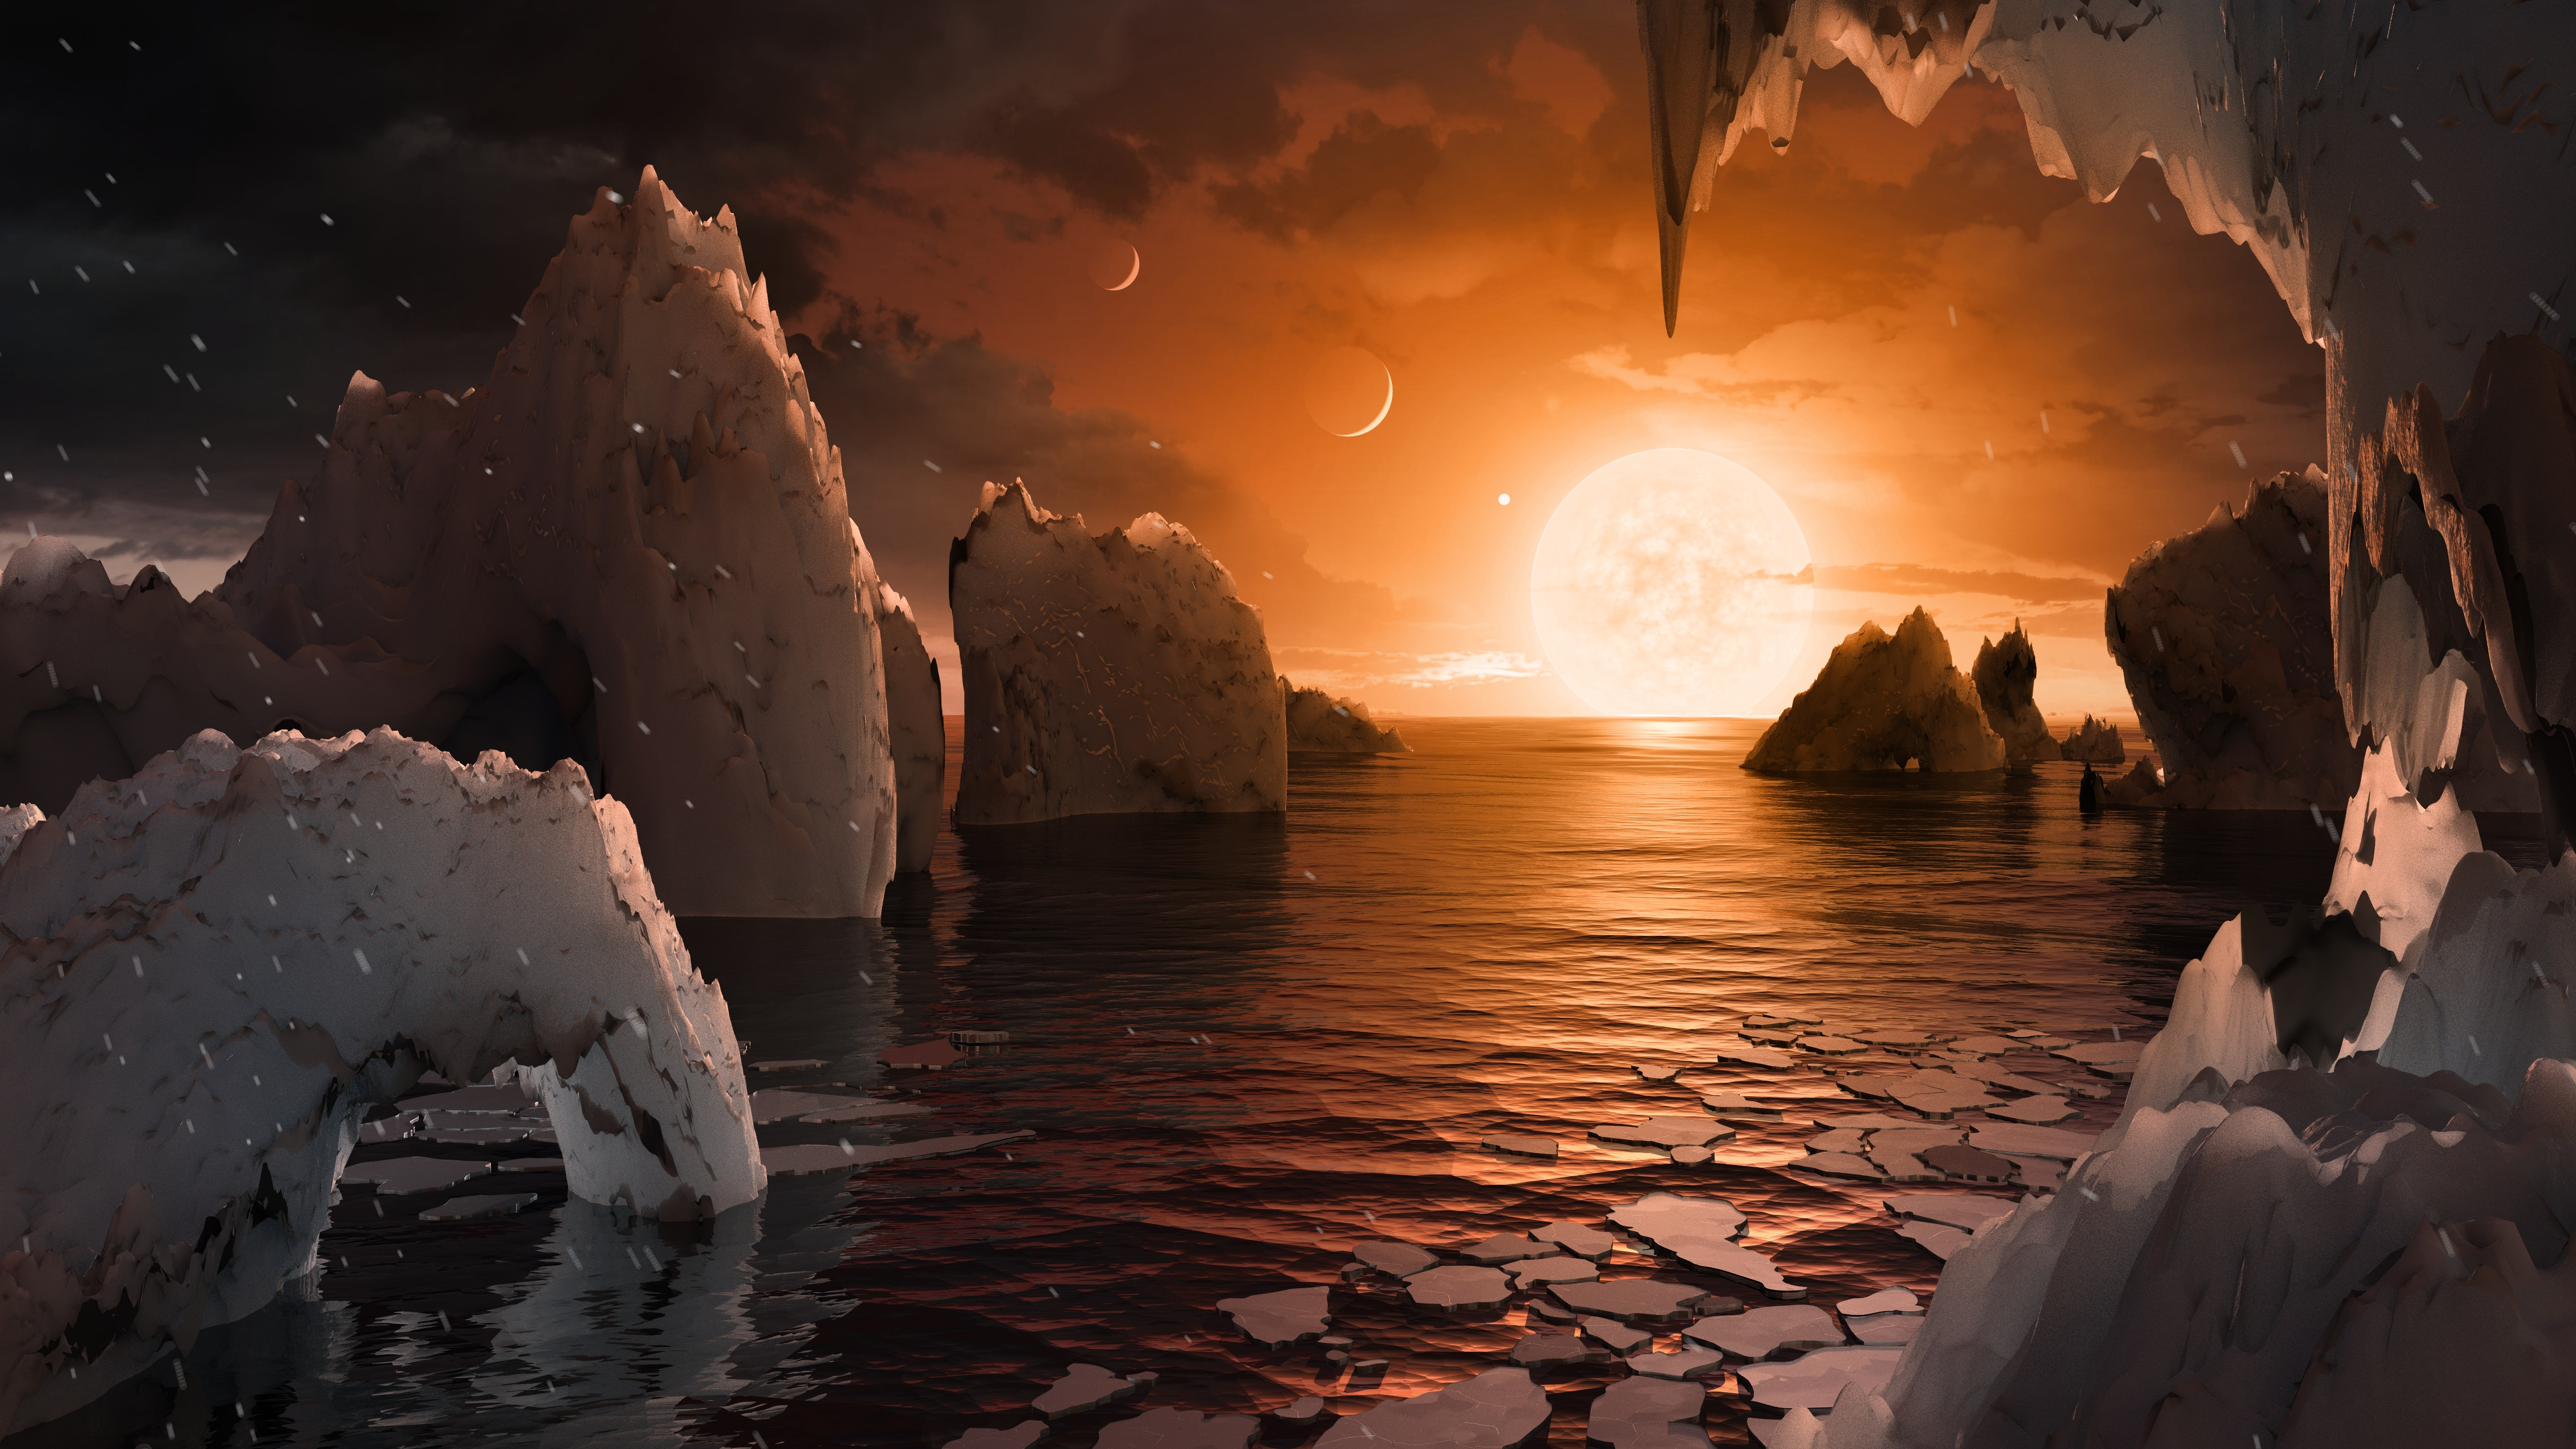 Discovery of Solar System & 7 Earth-Sized Planets — NASA Announcement Highlights